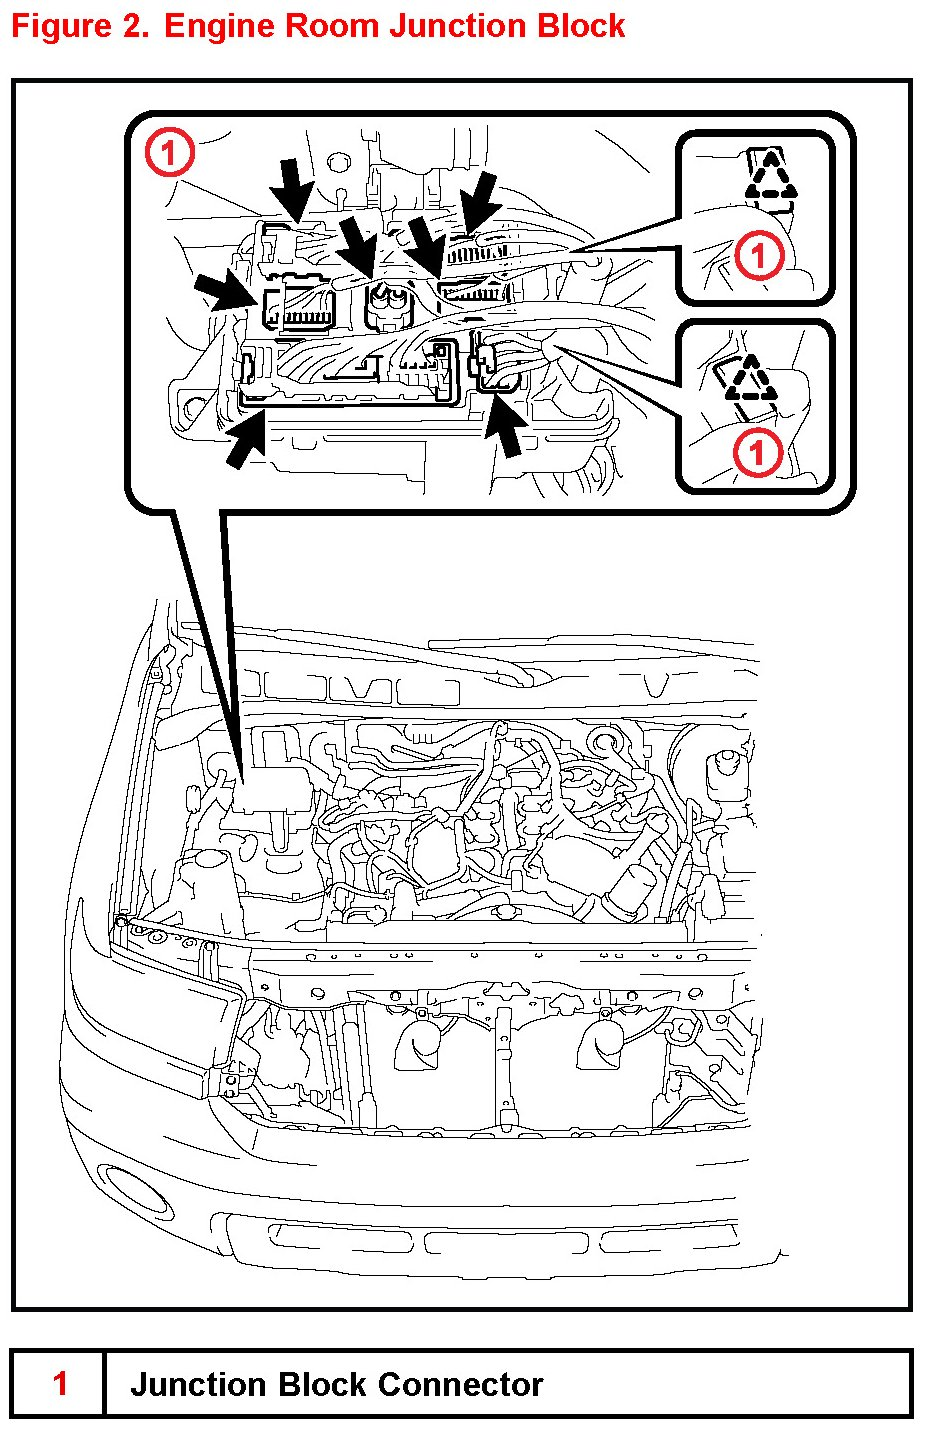 Suzuki Xl7 Engine Diagram additionally Manual Honda Civic 1996 2001 Reparaci N Y Mecanica likewise Exhaust Emissions in addition transmissioncenter org  DSC1786 likewise Coolant Temperature Sensor Location. on 2008 ford focus evap system